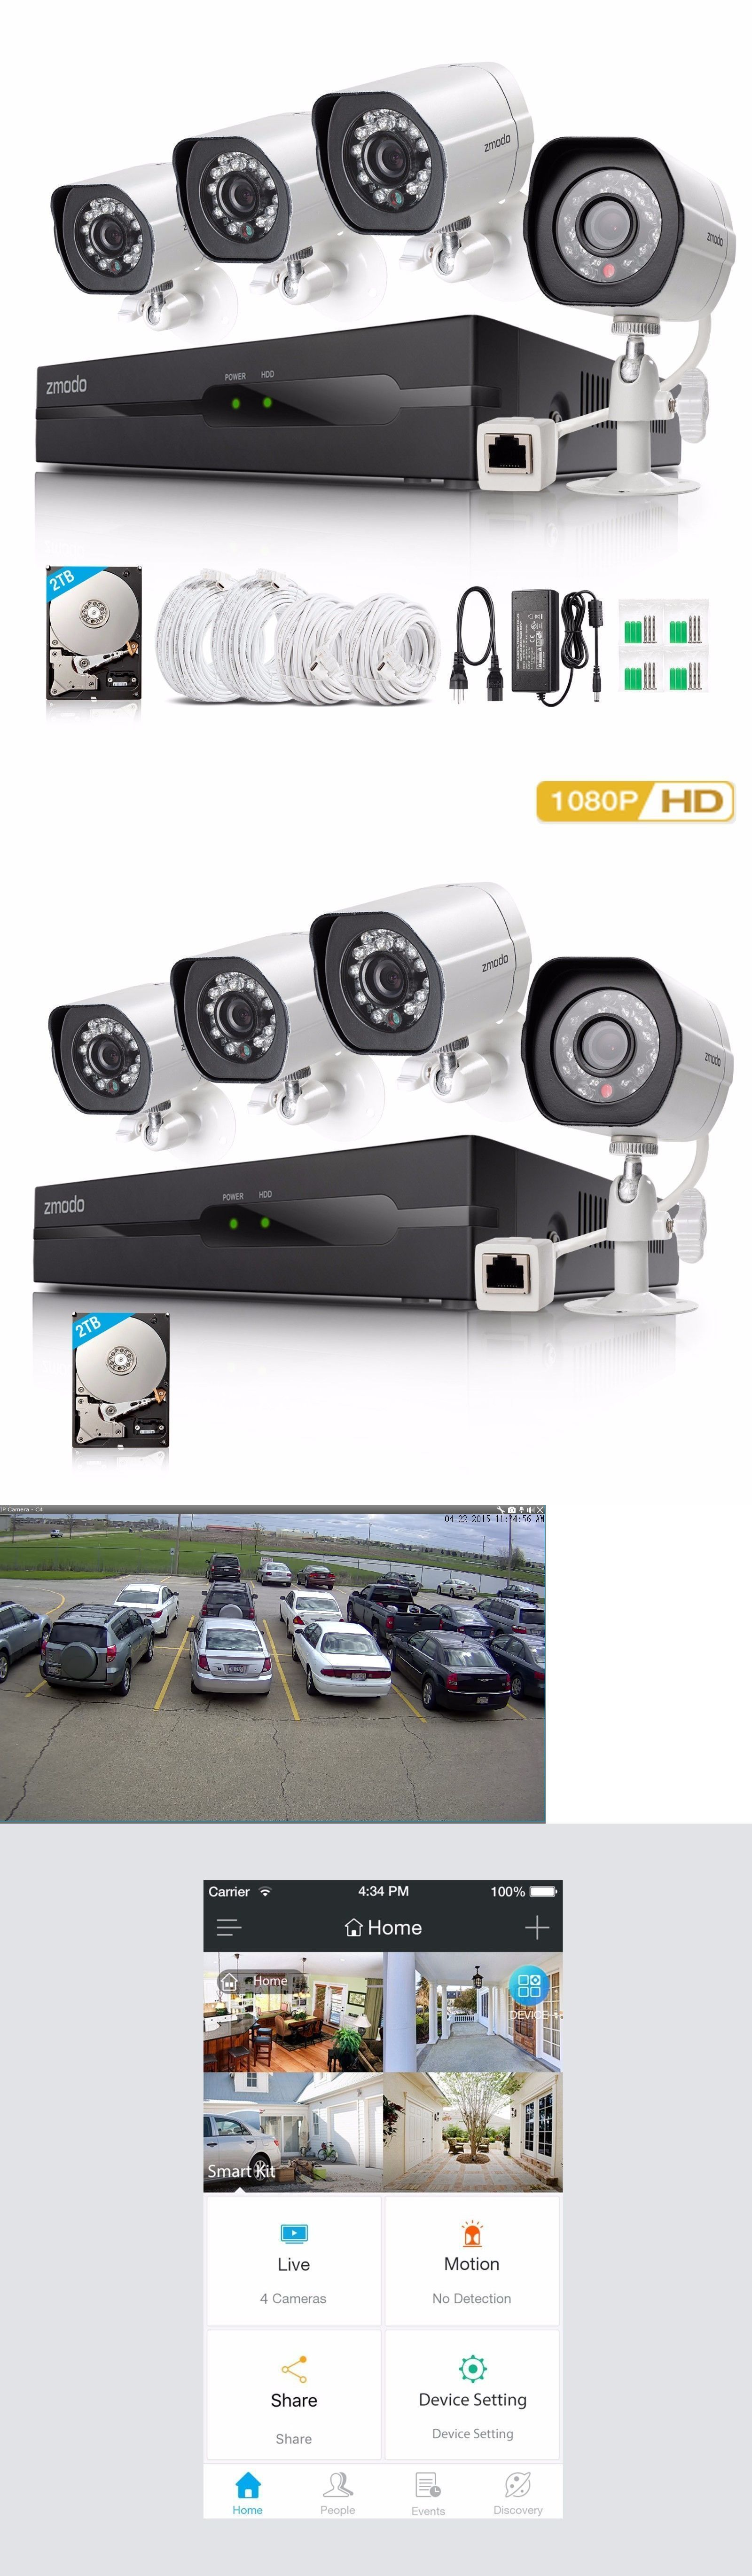 Best 50 amazing home security system cameras httpsideacoration best 50 amazing home security system cameras httpsideacoration solutioingenieria Images